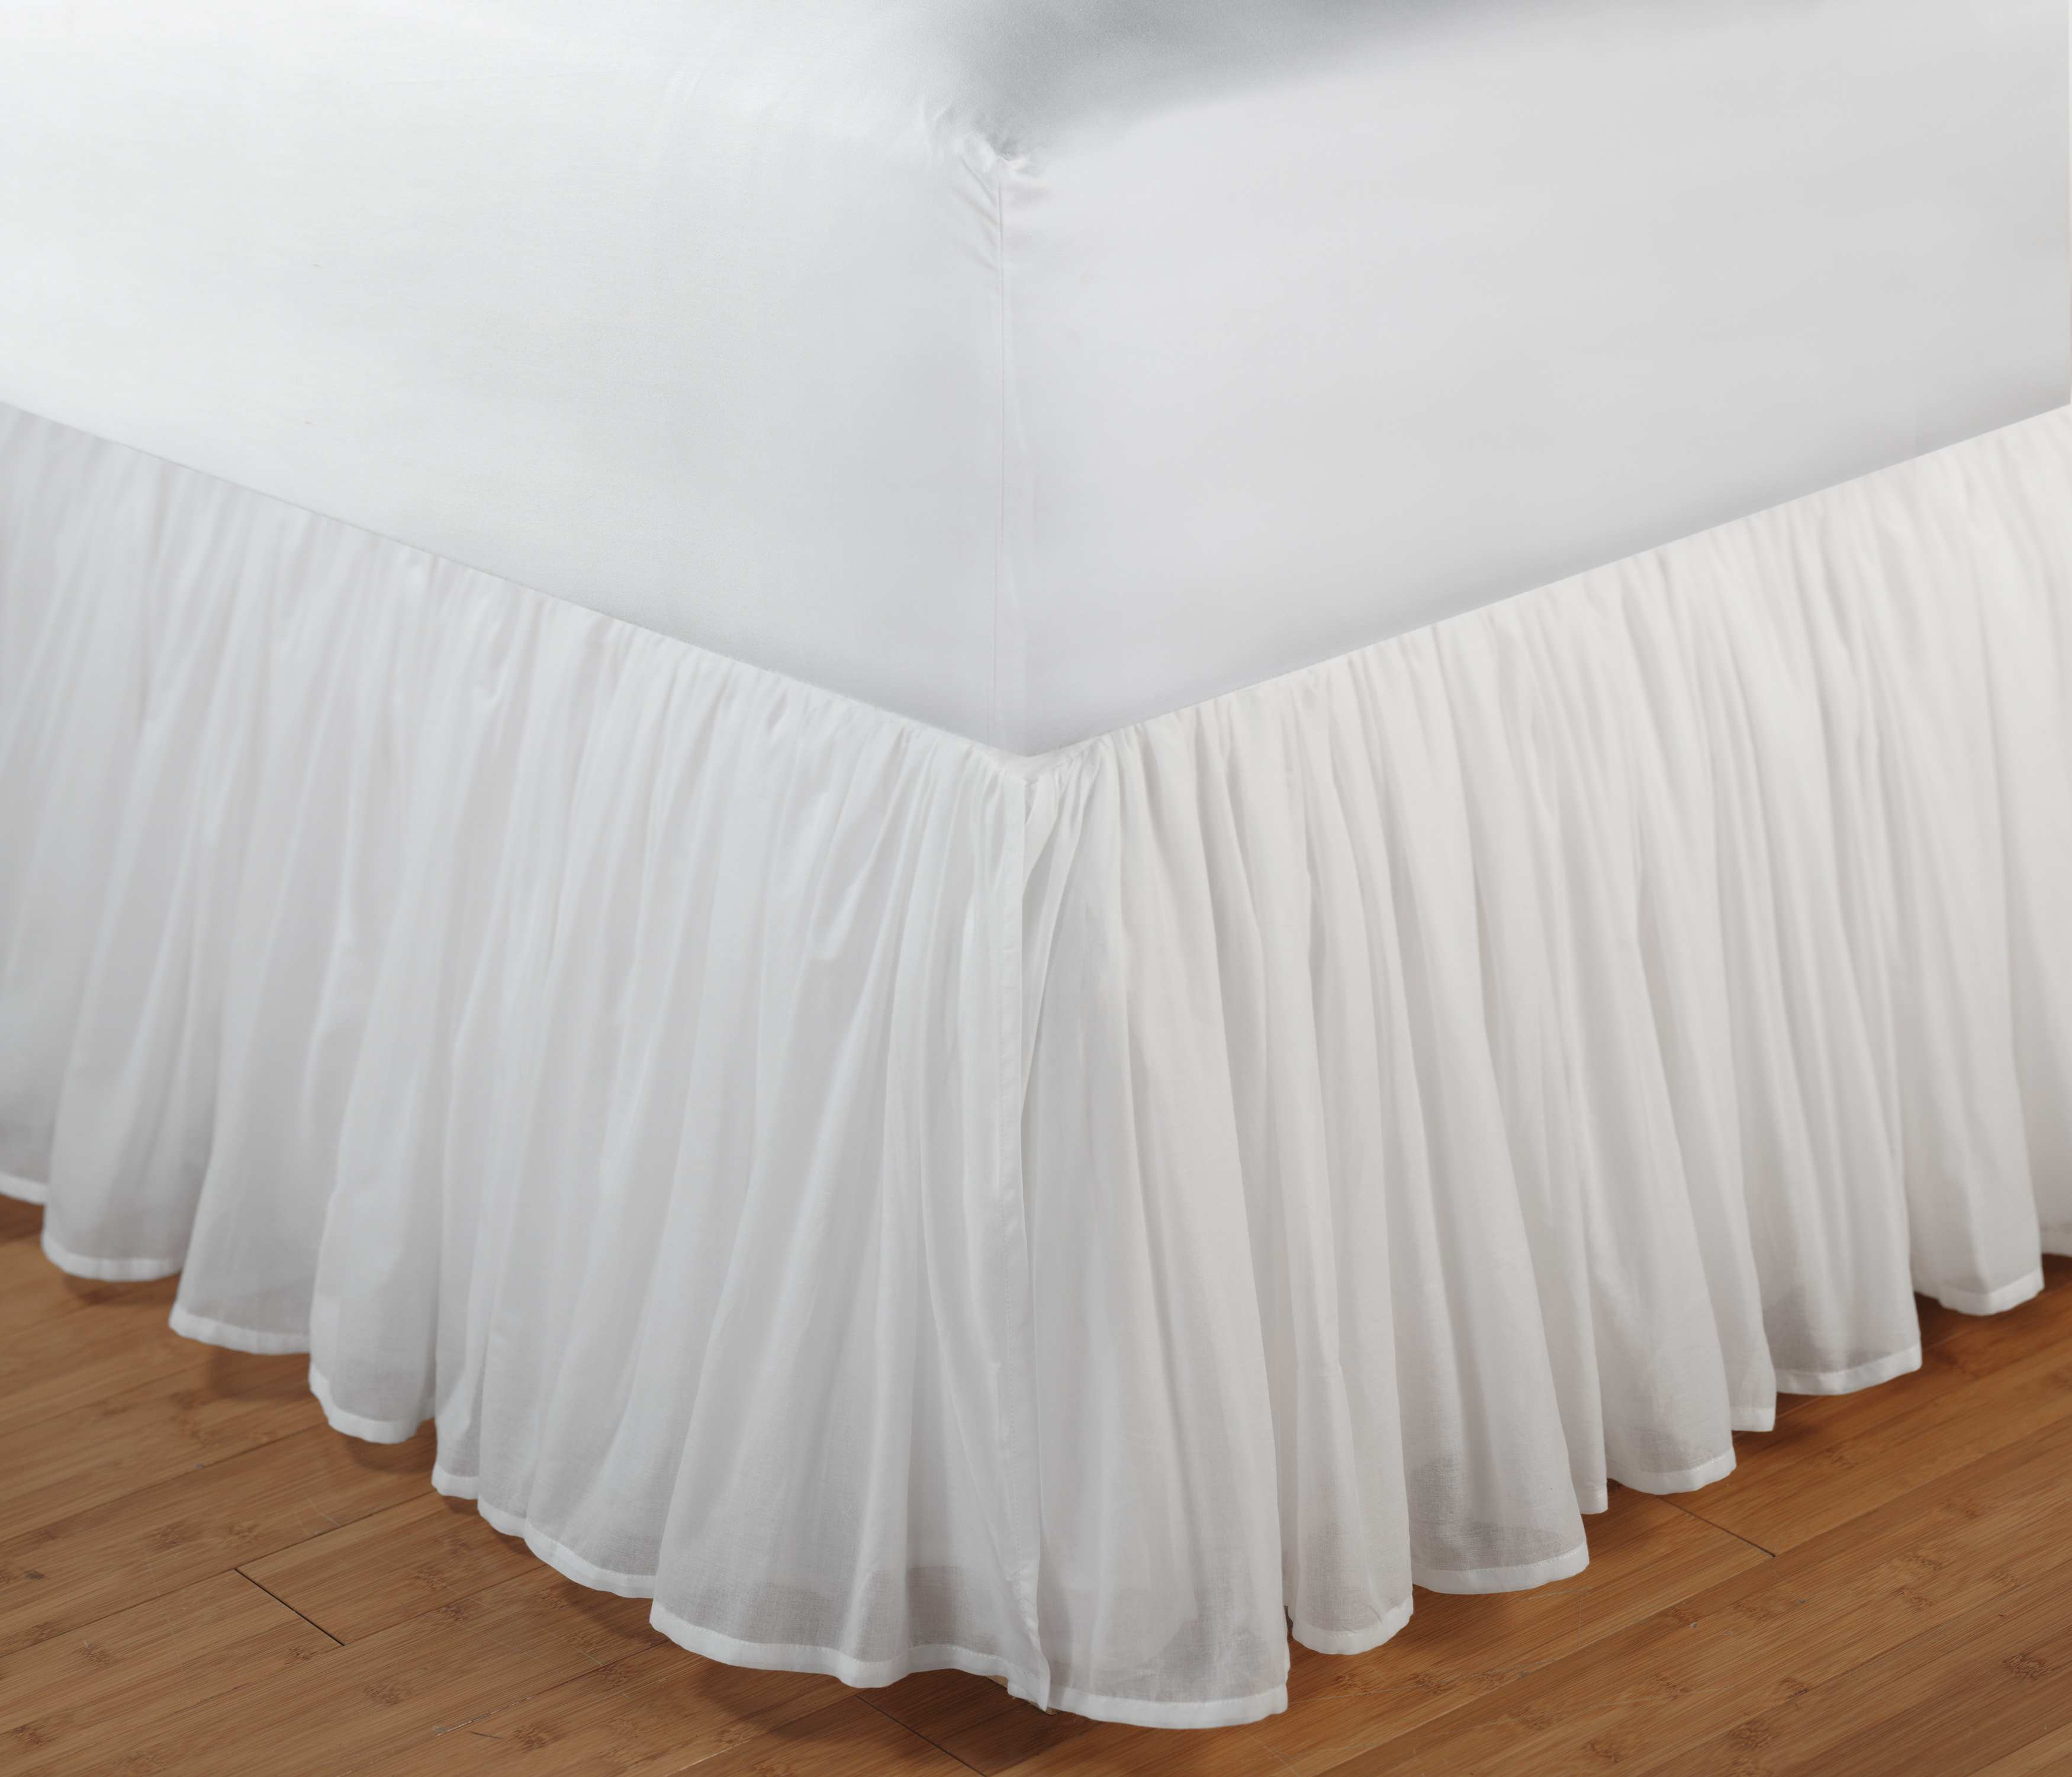 Cotton Voile White Bed Skirt 15 Twin